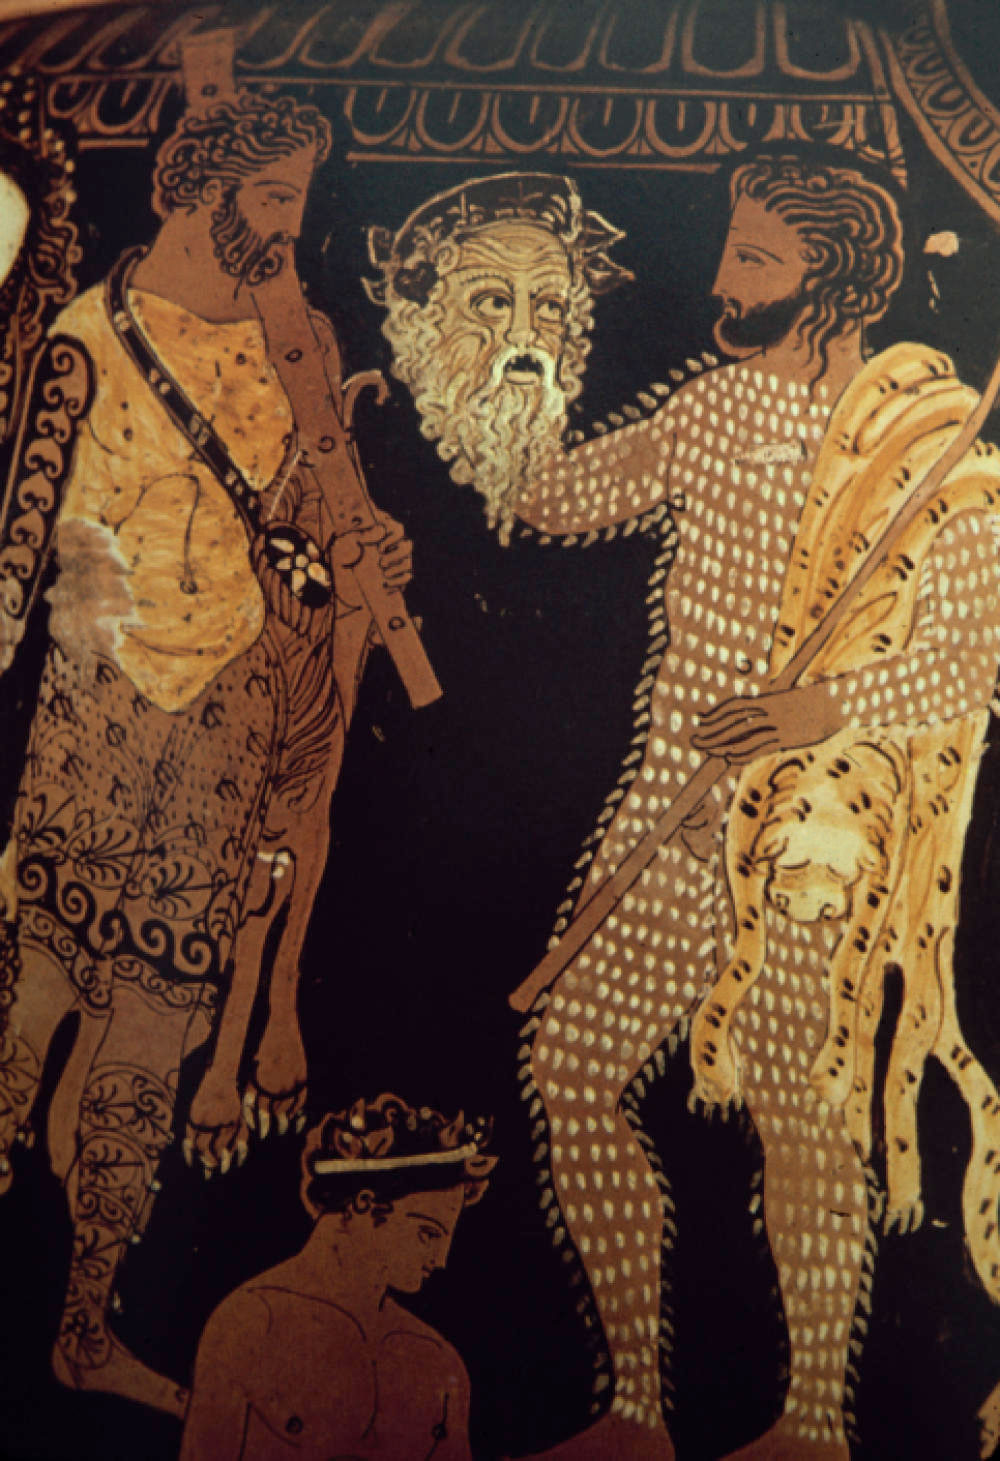 an essay on ancient greek drama and theater Introduction to greek drama background essay print compare and contrast theater in ancient greece with modern theater.